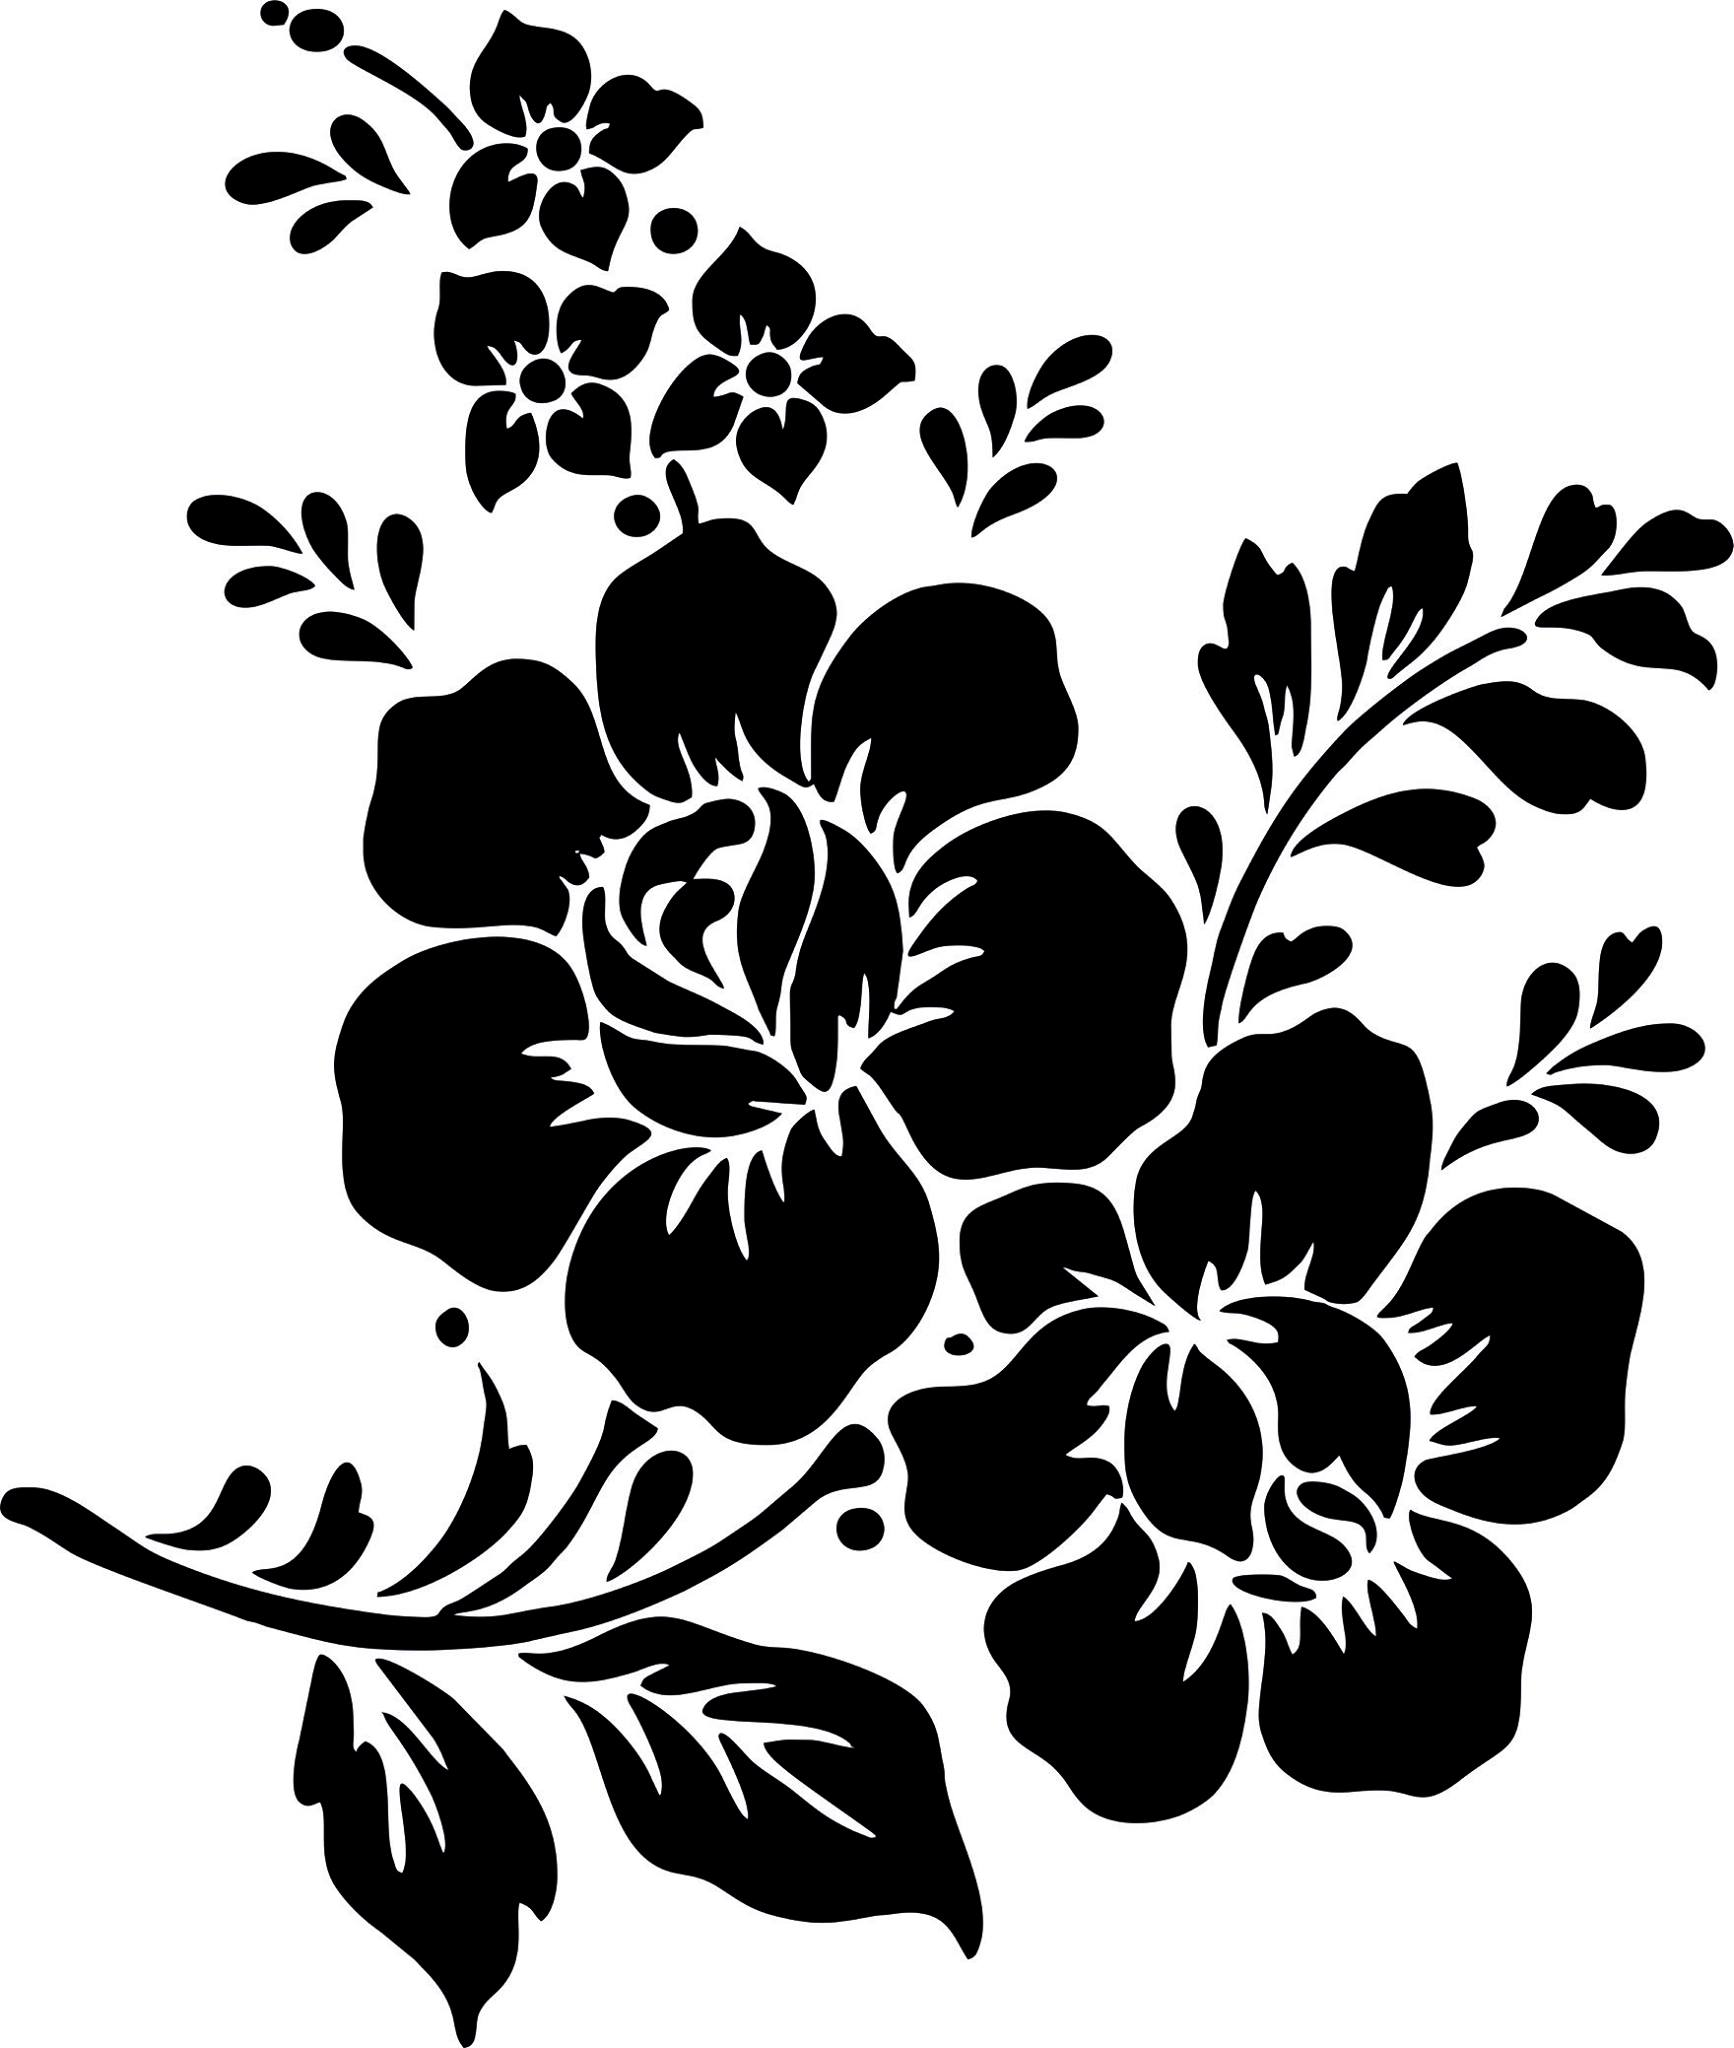 rose flower vector vector art jpg image free download 3axis co rh 3axis co flower vector art png flower vector art black and white